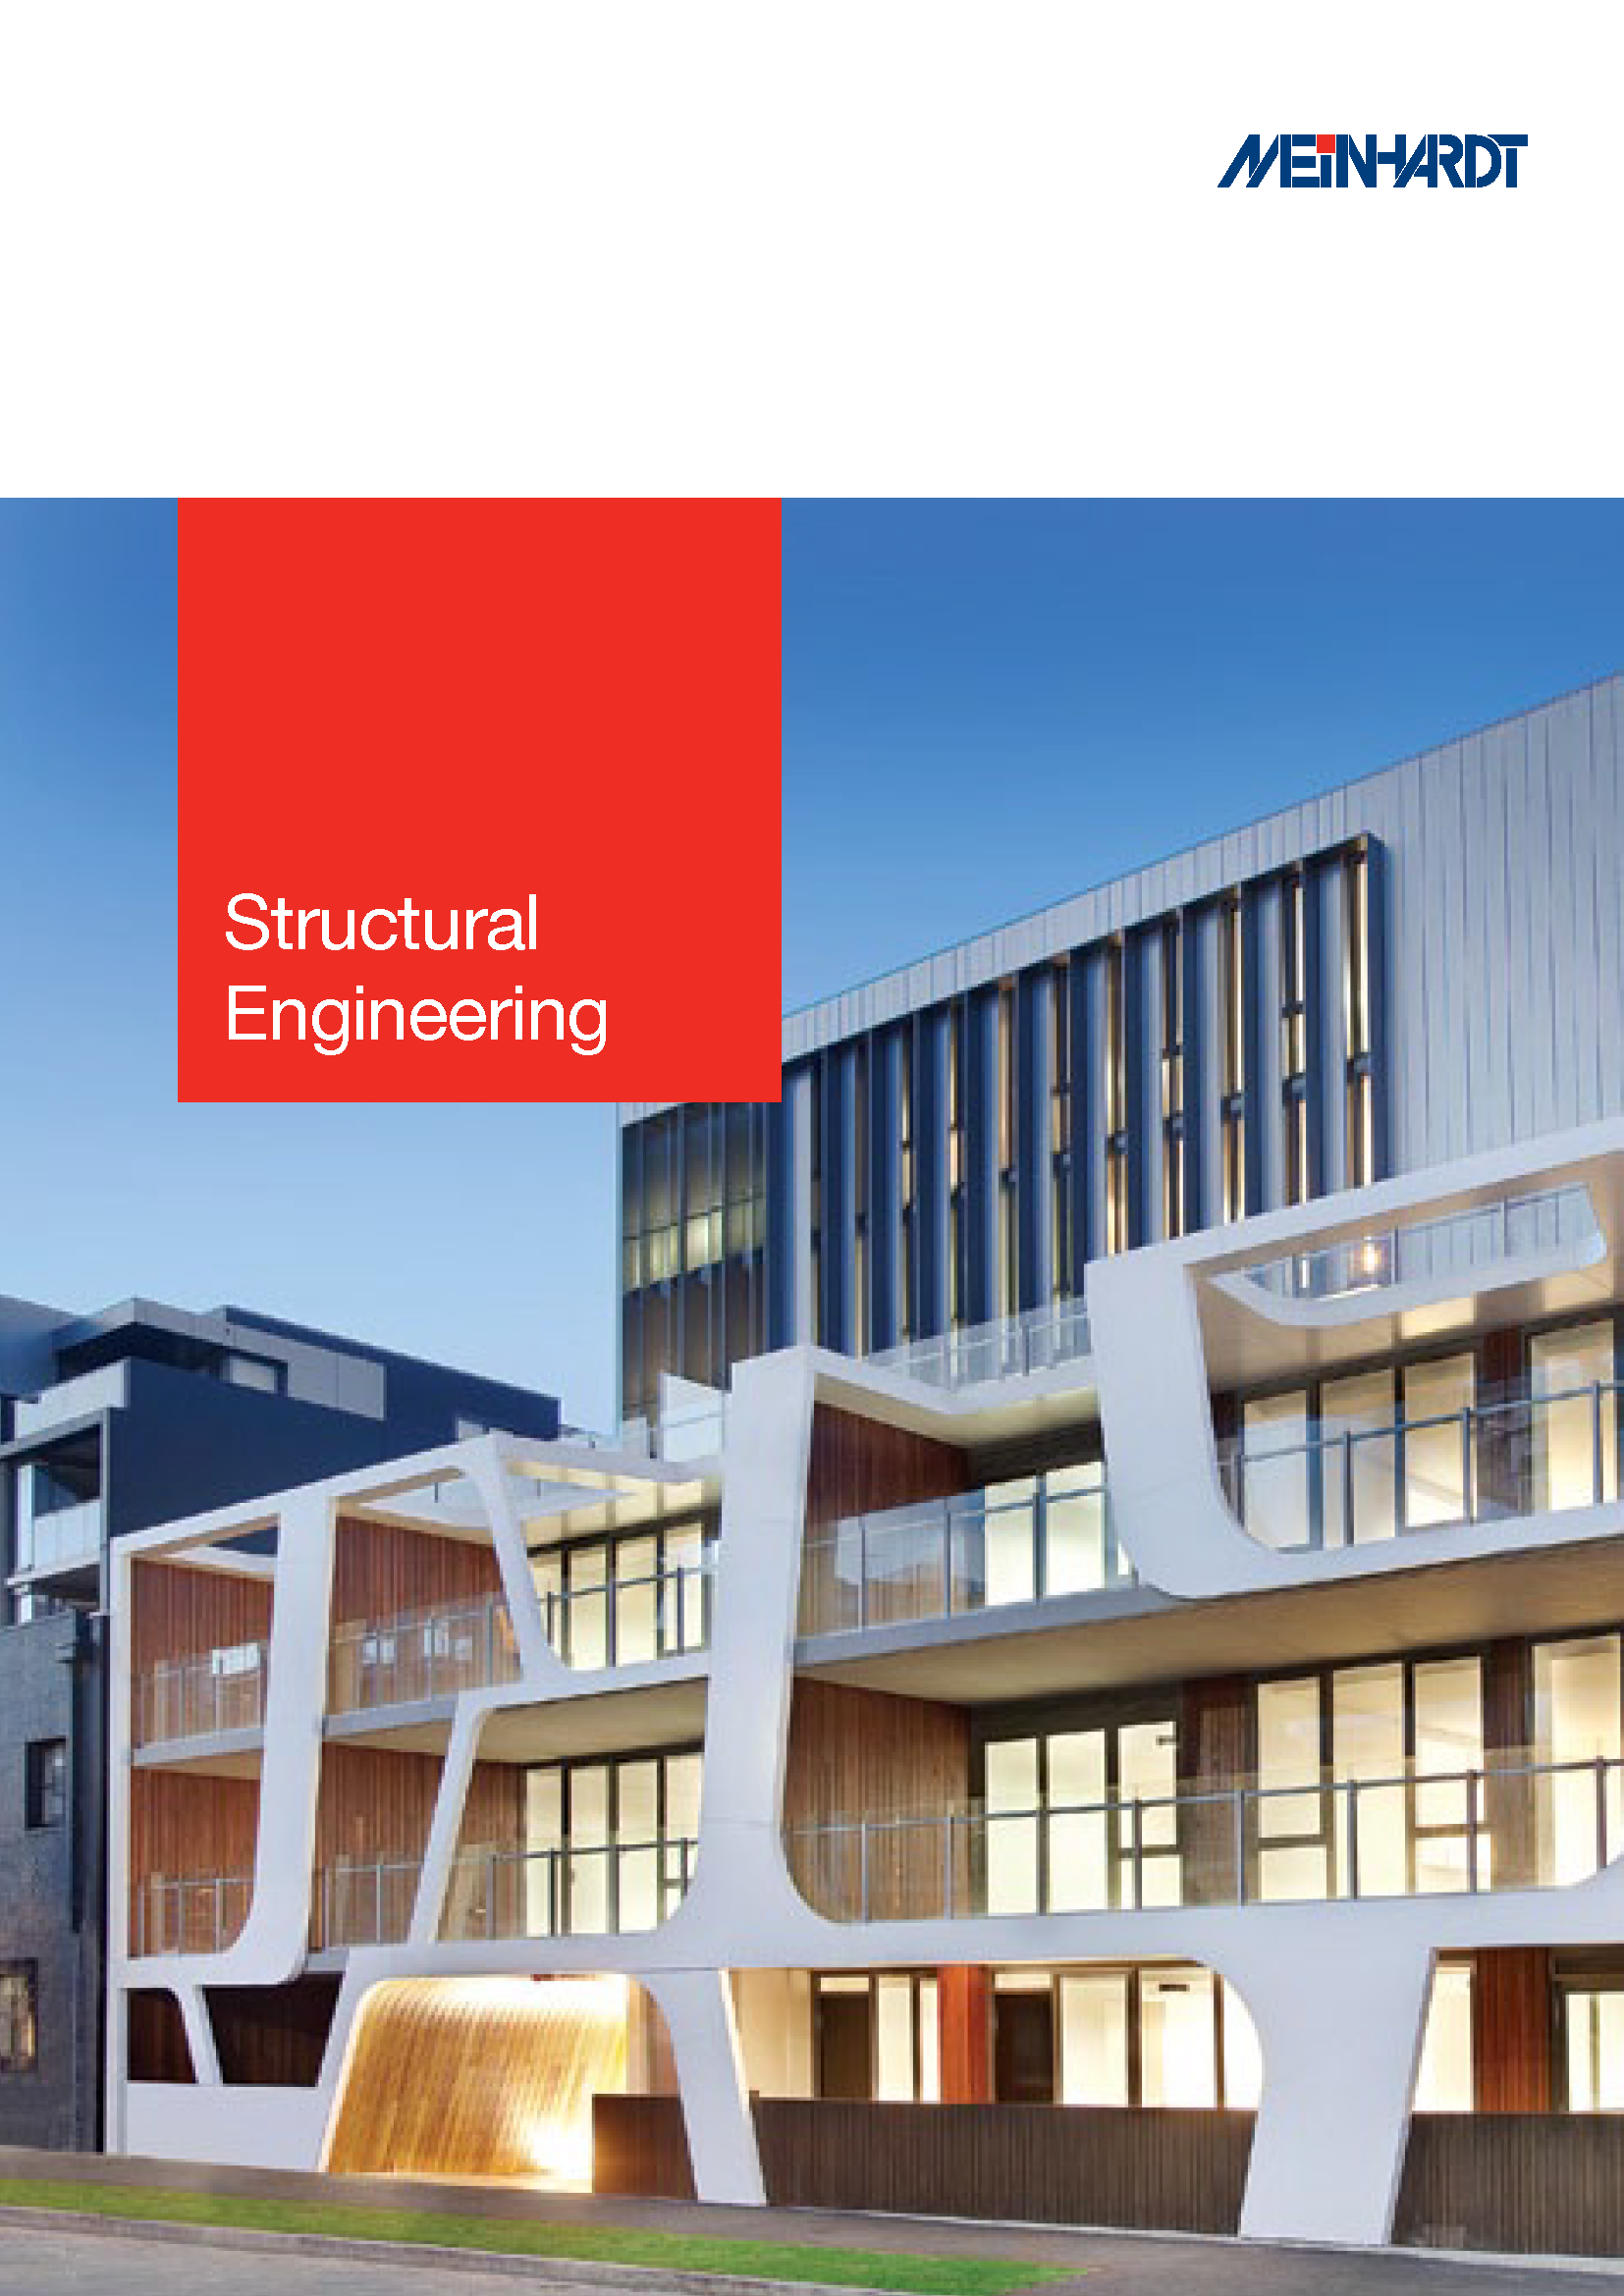 Structural Engineering Magazine : Publications meinhardt transforming cities shaping